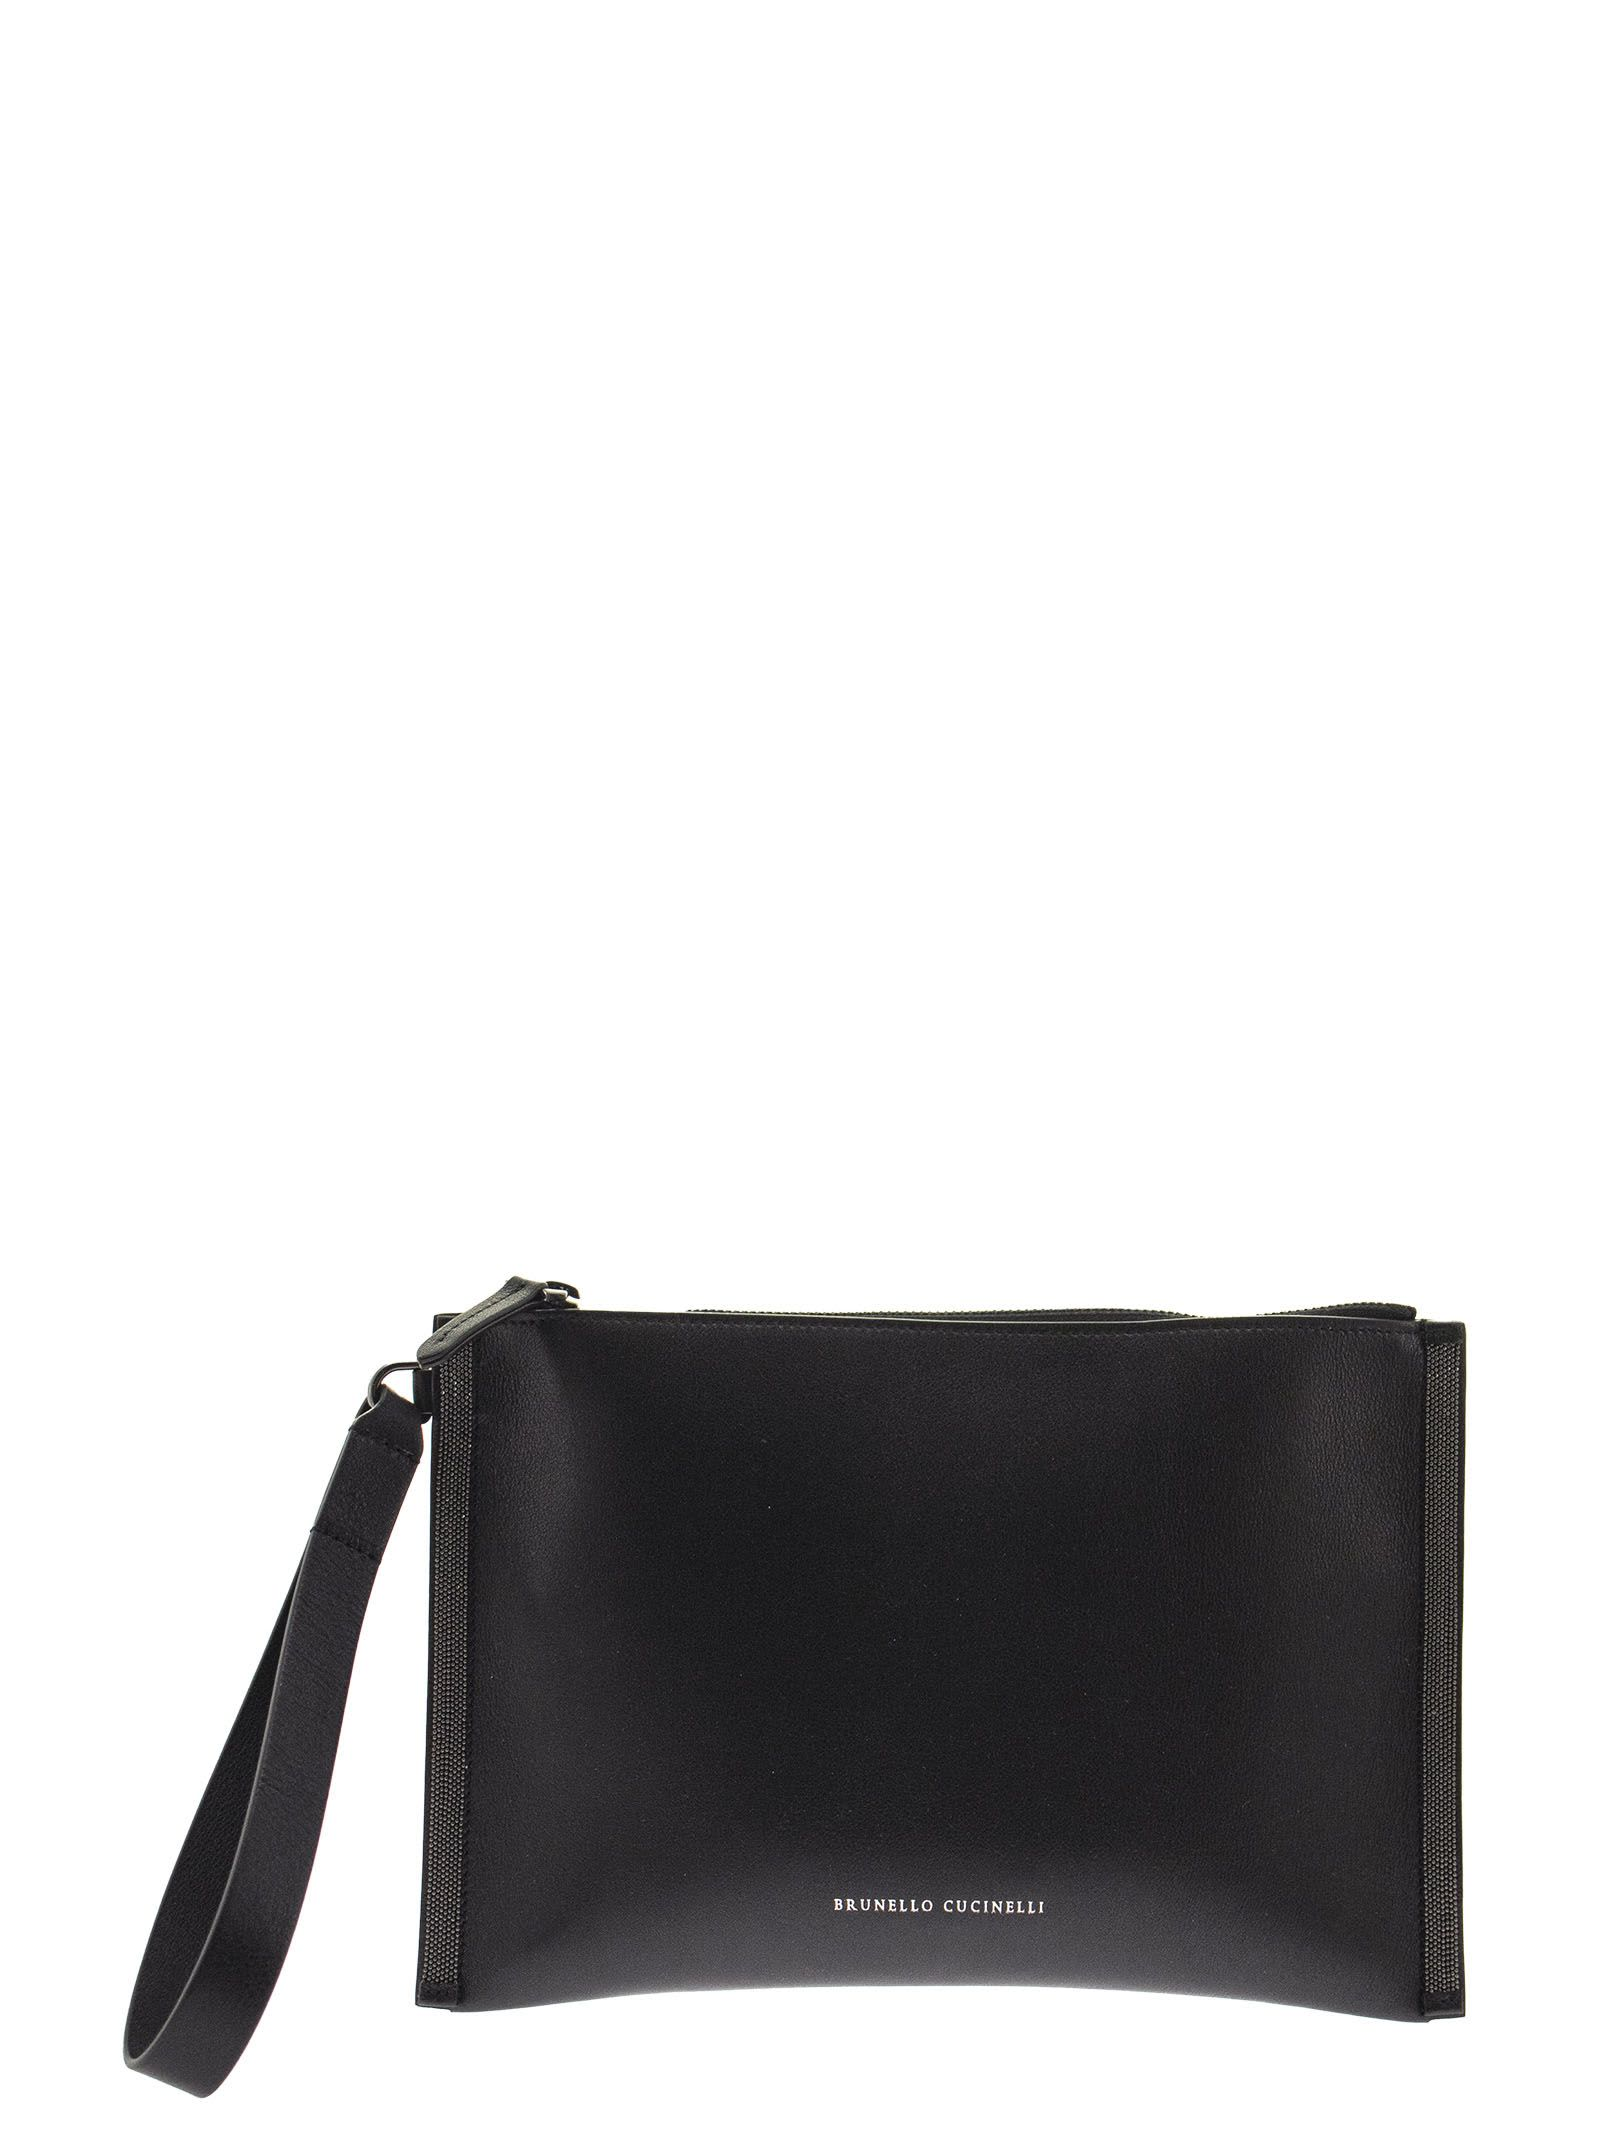 Brunello Cucinelli Leathers POLISHED CALFSKIN CLUTCH BAG WITH PRECIOUS EDGES BLACK